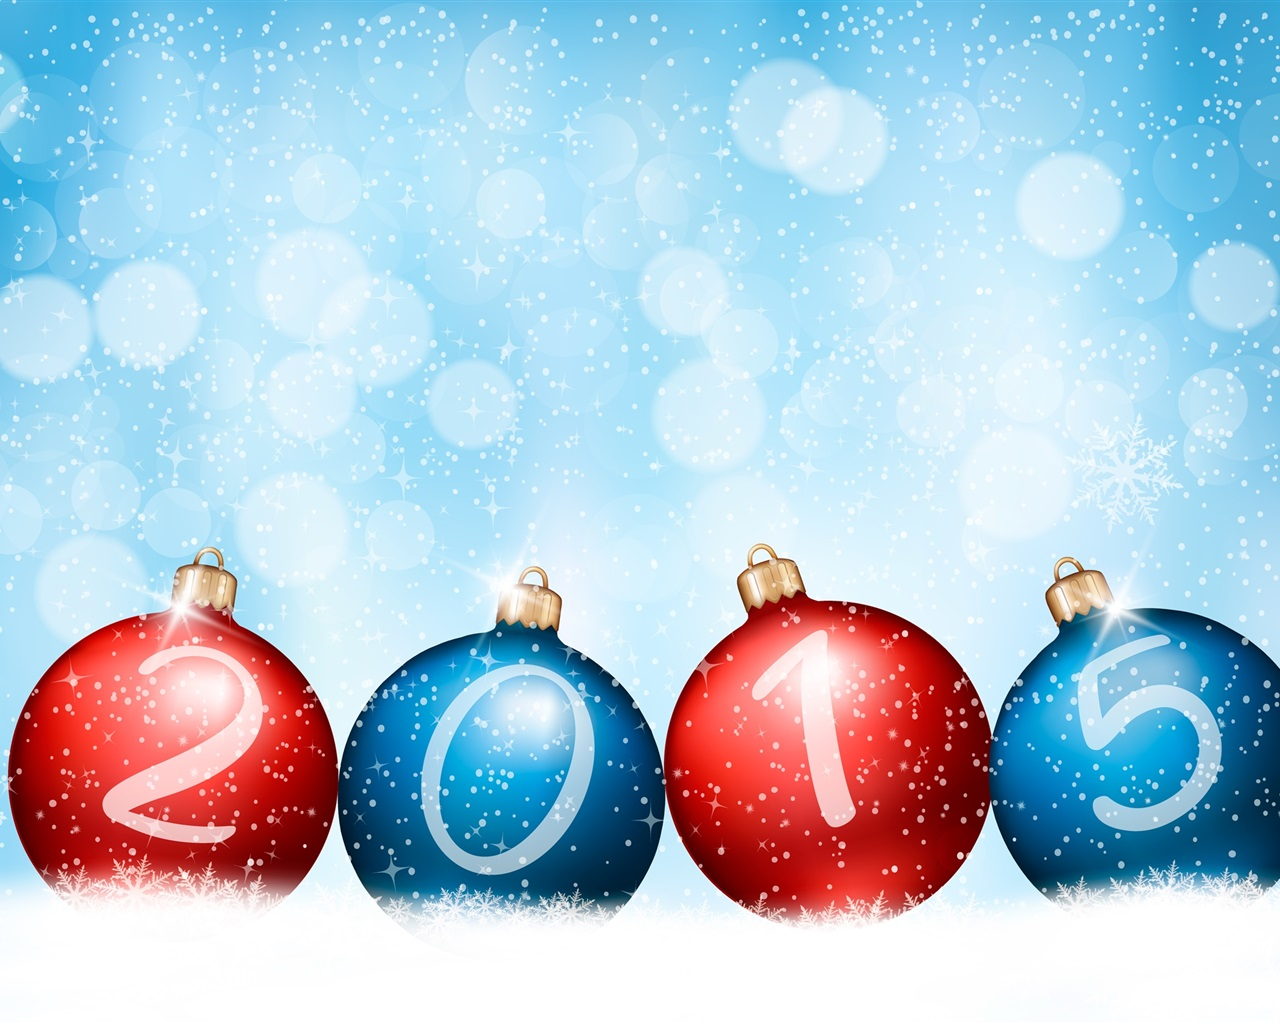 new year 2015 red blue balls wallpaper 1280x1024 description happy new ...